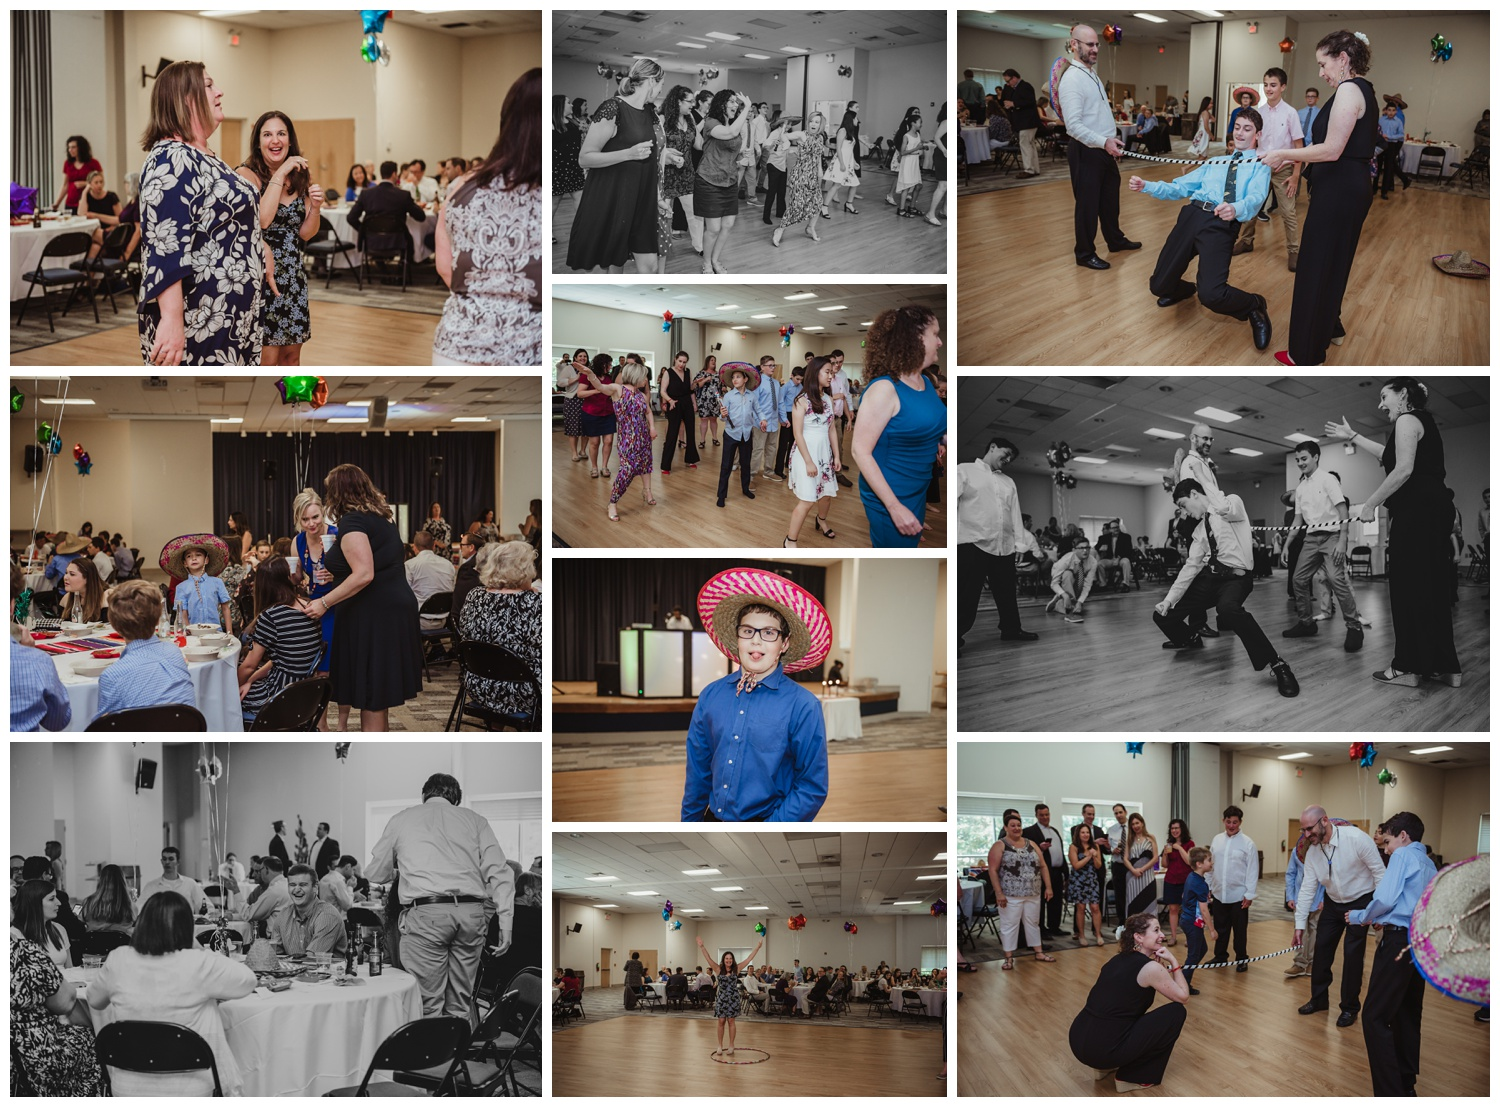 At the Mexican themed mitzvah guests had a great time dancing and doing the limbo, pictures taken at Temple Beth Or in Raleigh, NC by Rose Trail Images.